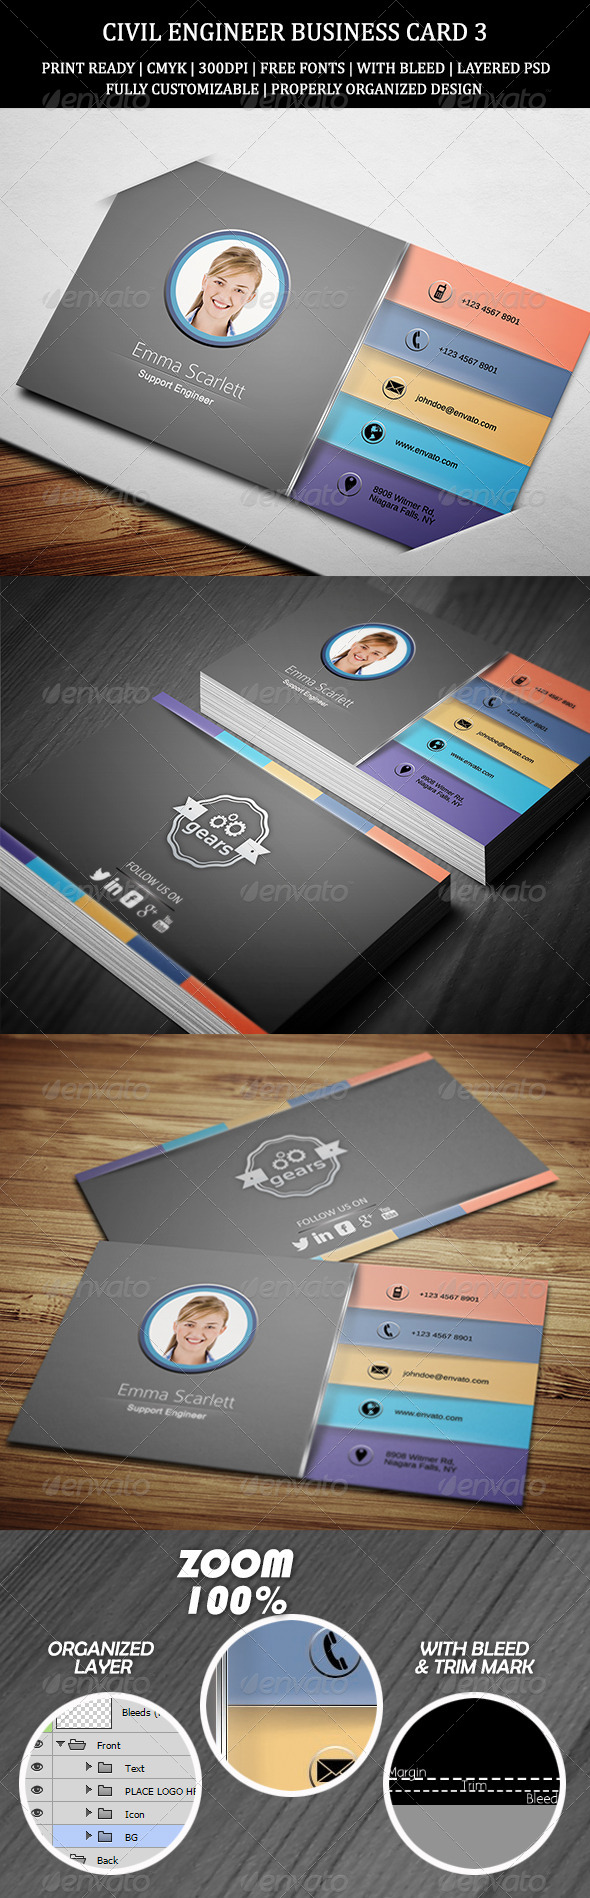 Civil Engineer Business Card 3 - Creative Business Cards